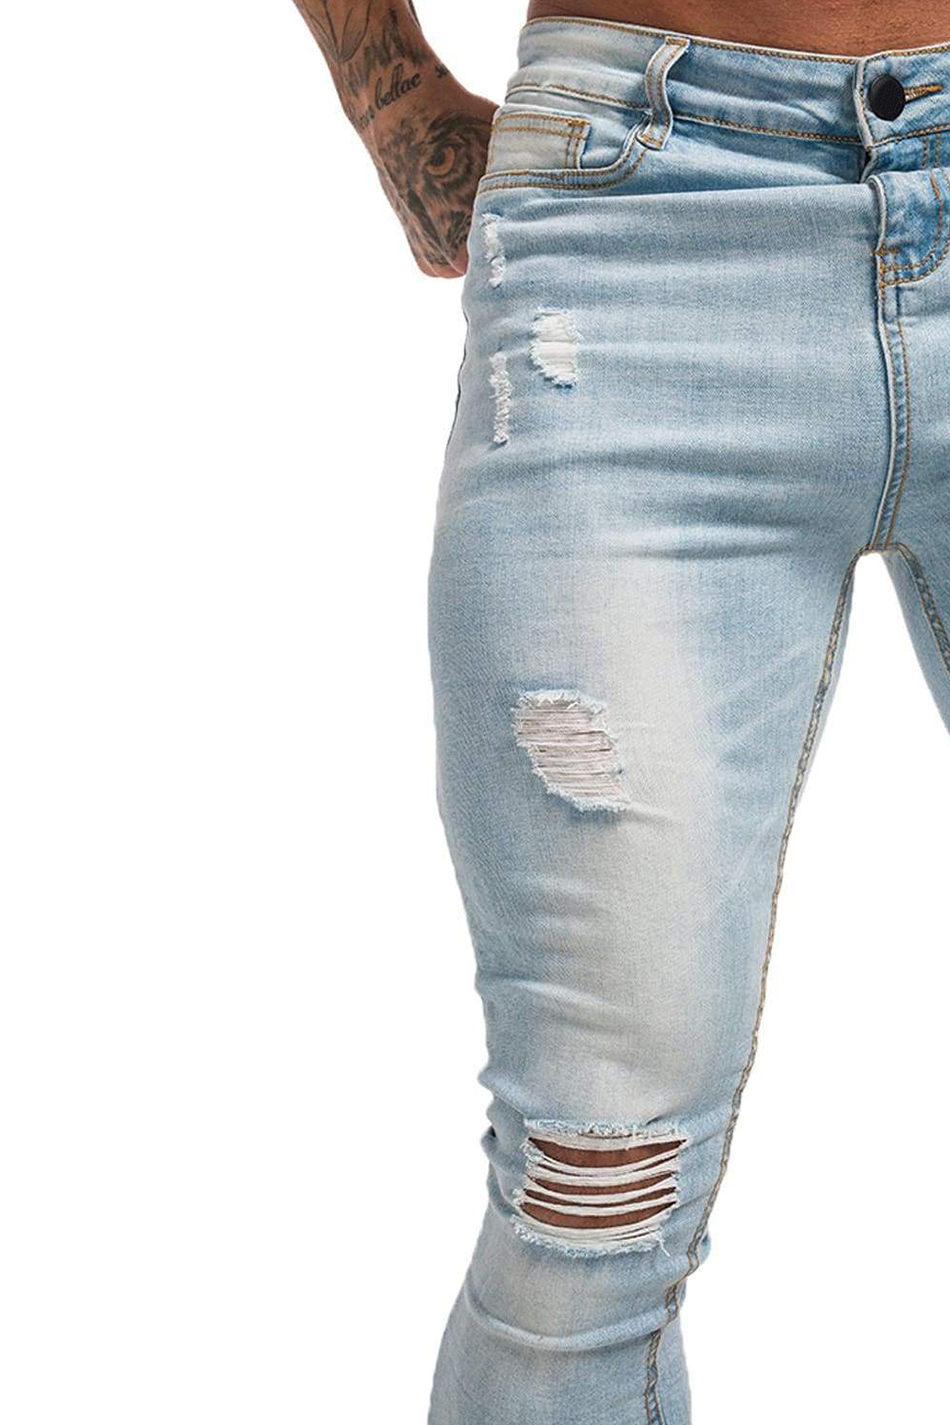 Ripped & Repaired Spray On Jeans - Light Wash - Maison